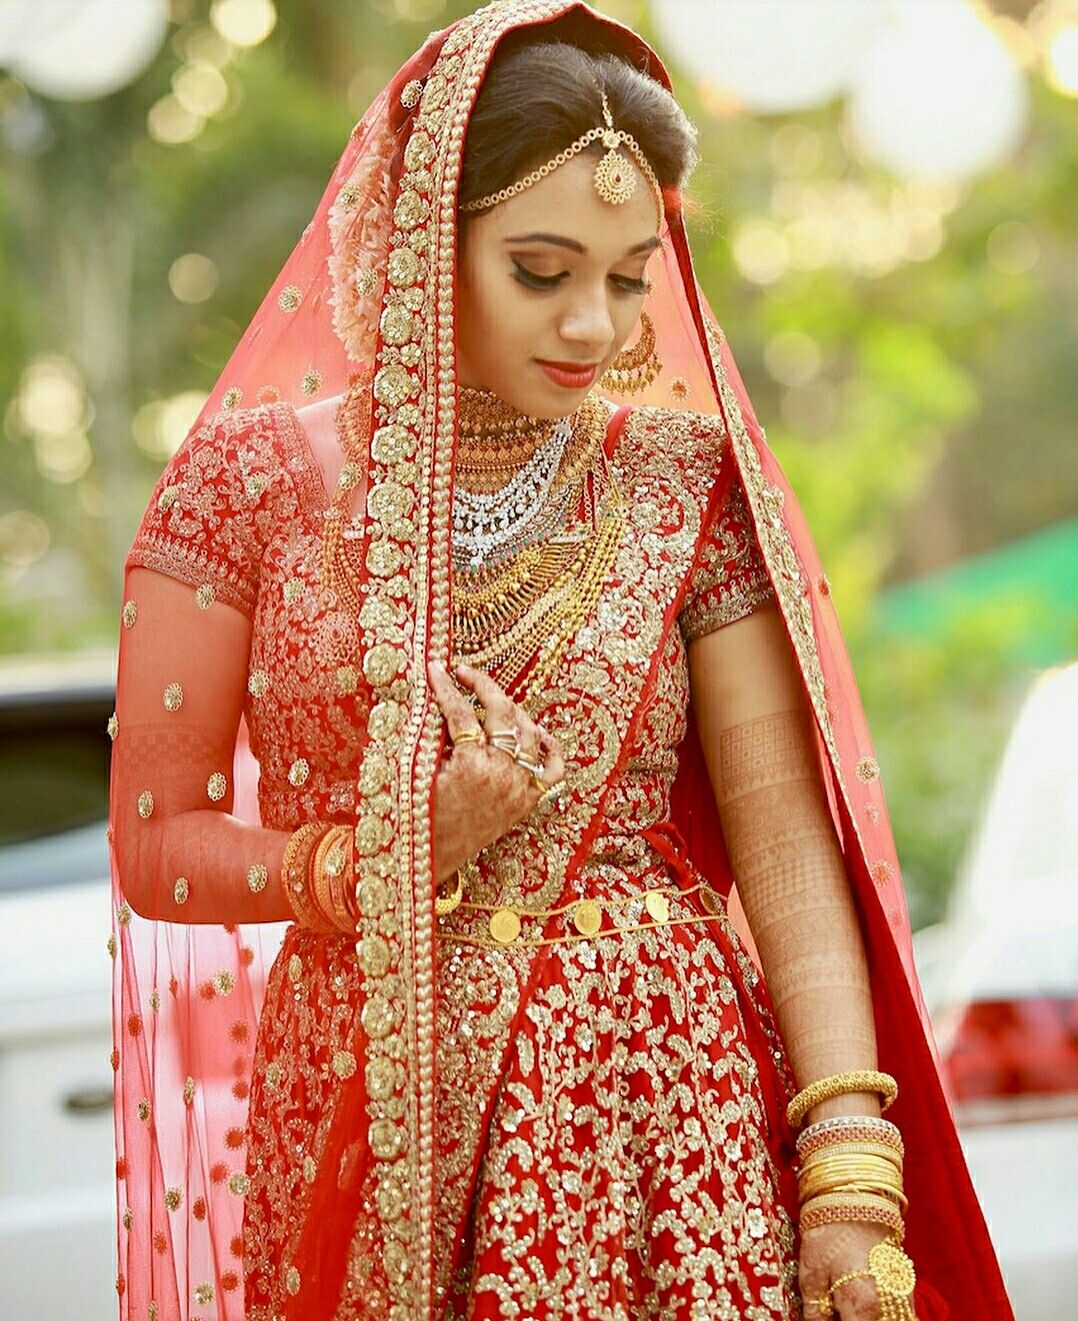 Kerala Bride Simple Hairstyle: Pin By Tarannum On Dulhan Dress (With Images)